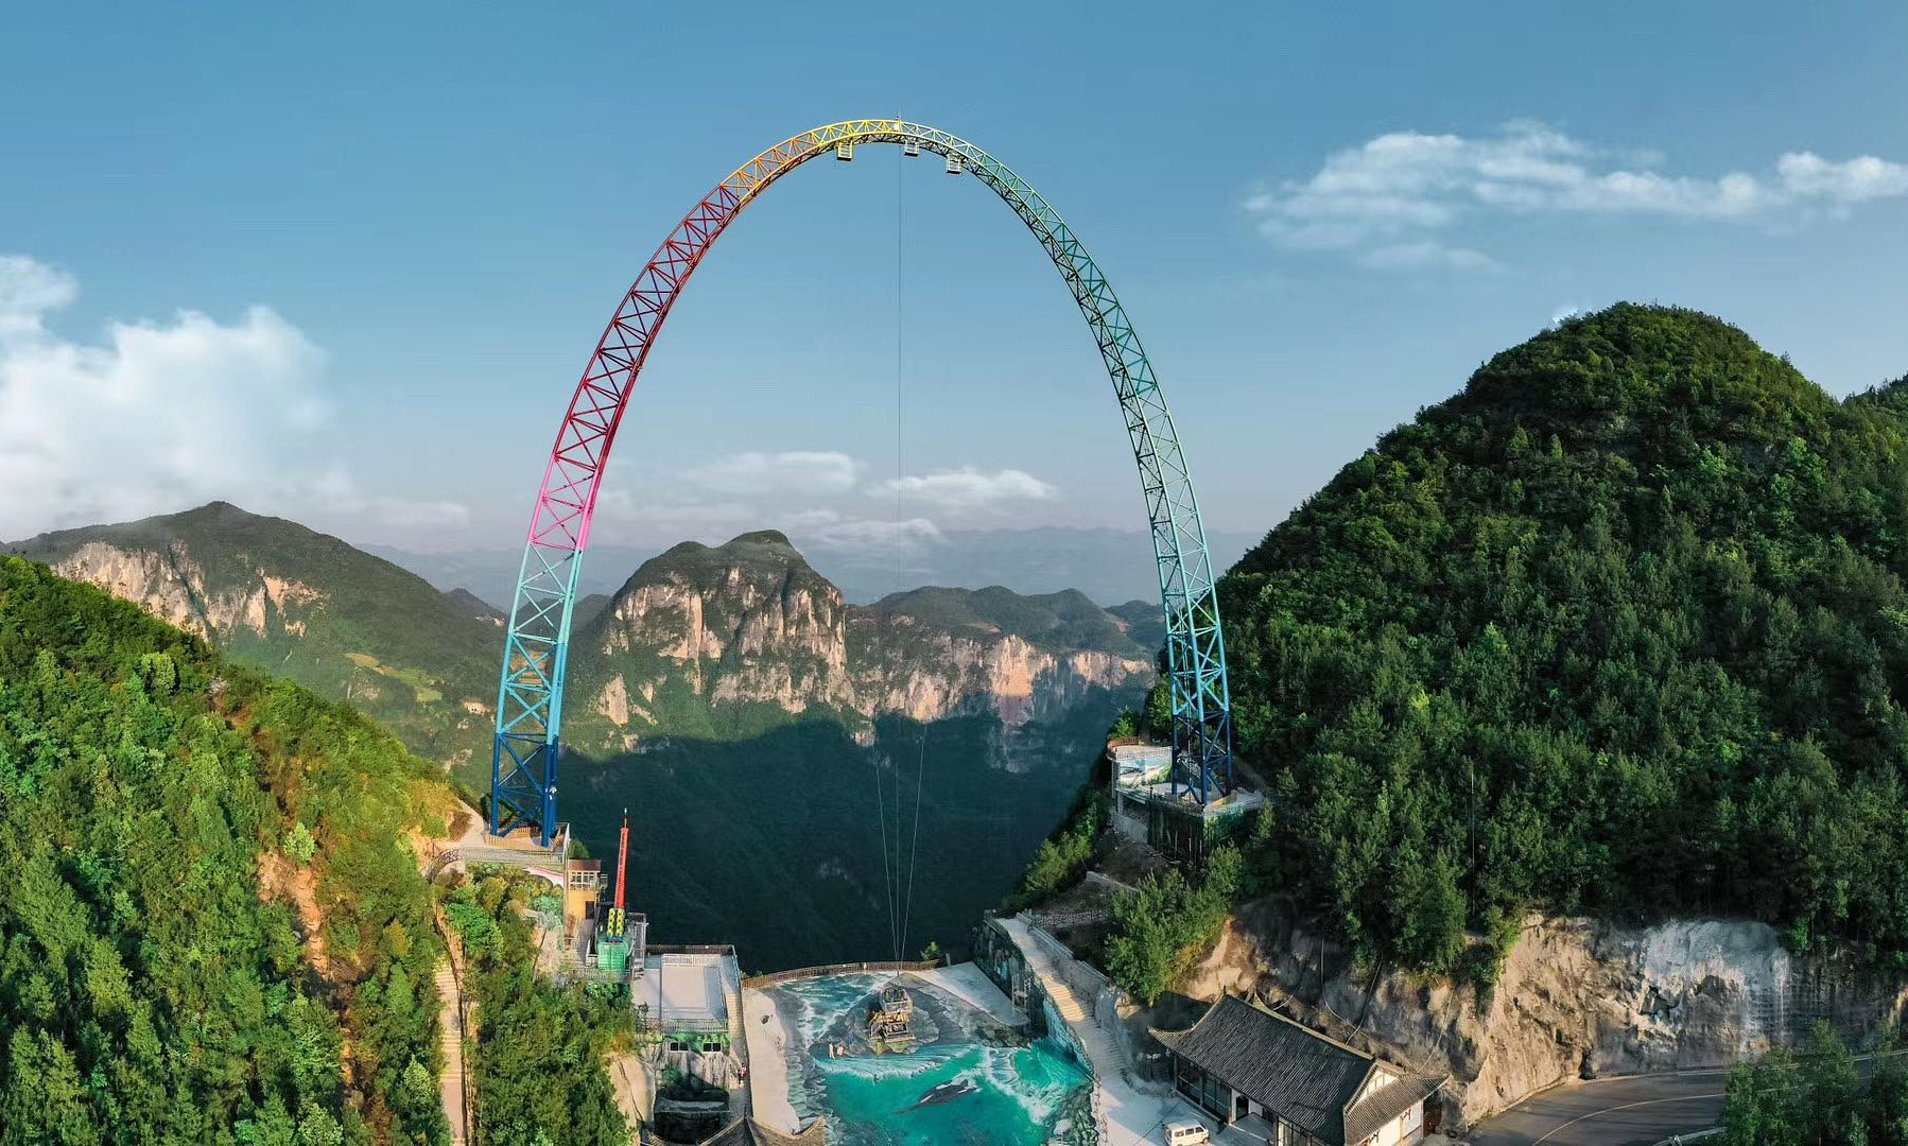 Standing 30 storeys tall – China has built the worlds largest and scariest swing